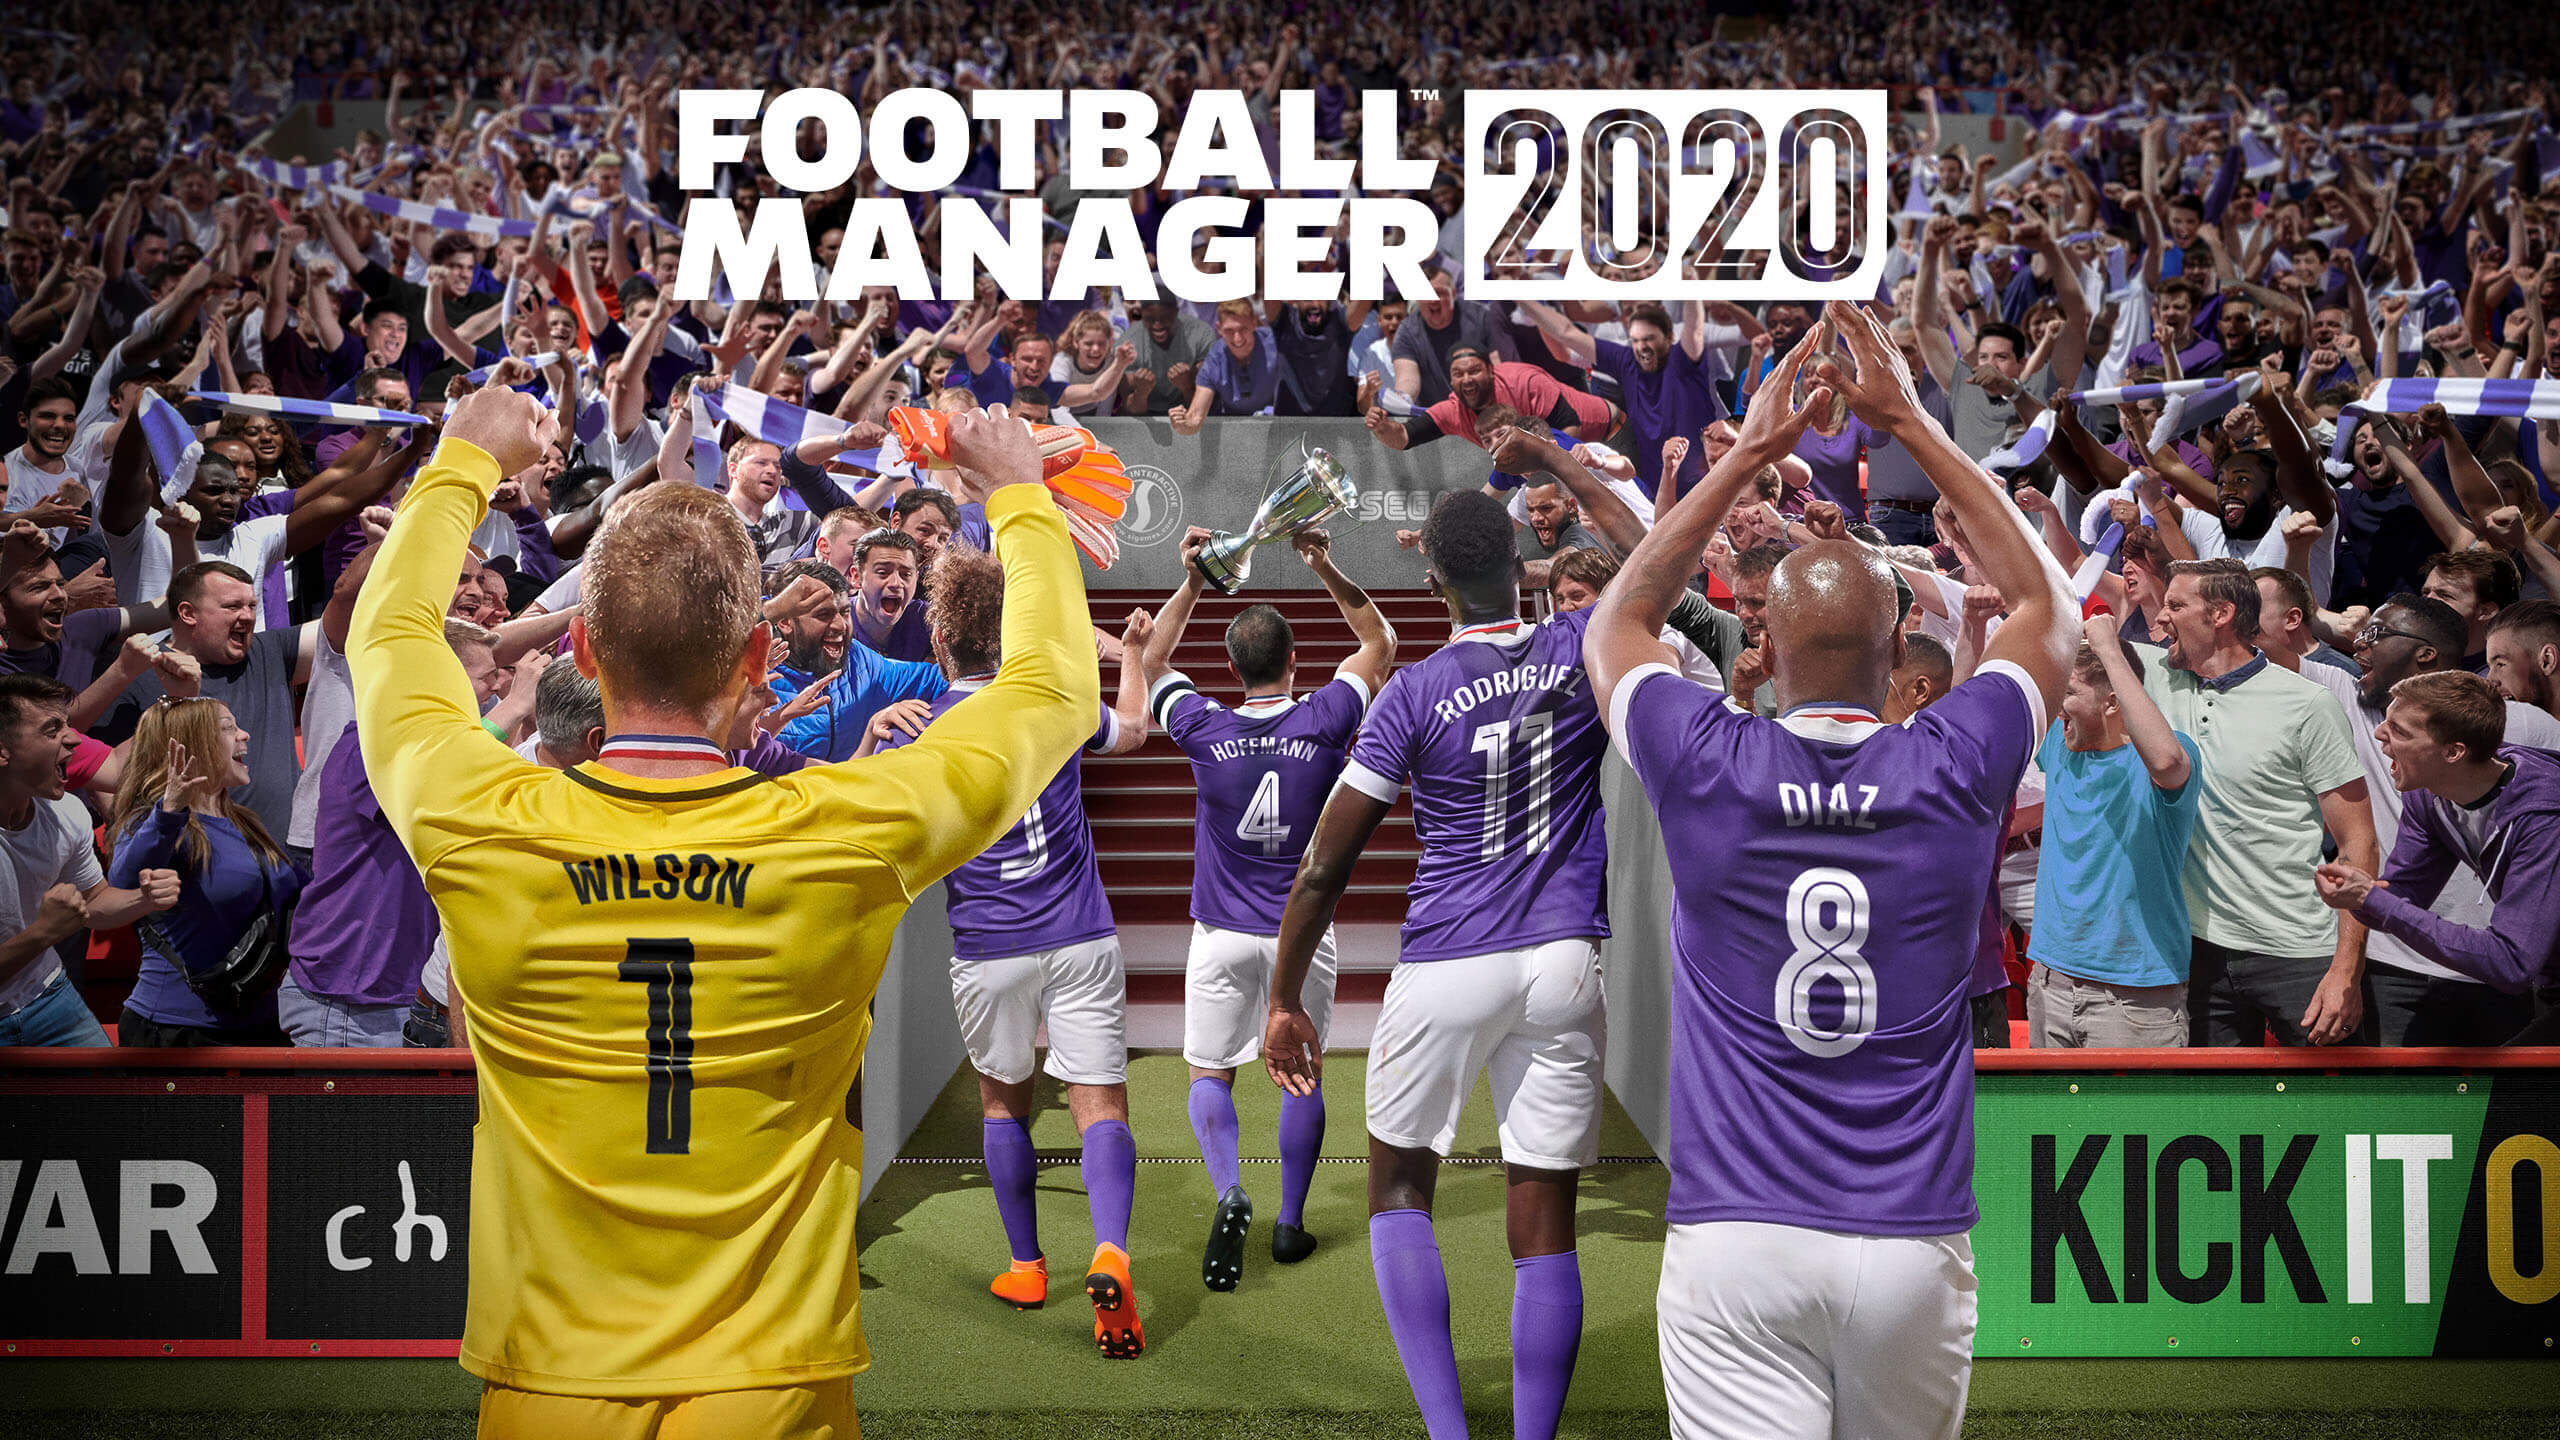 Football manager 2020 poster